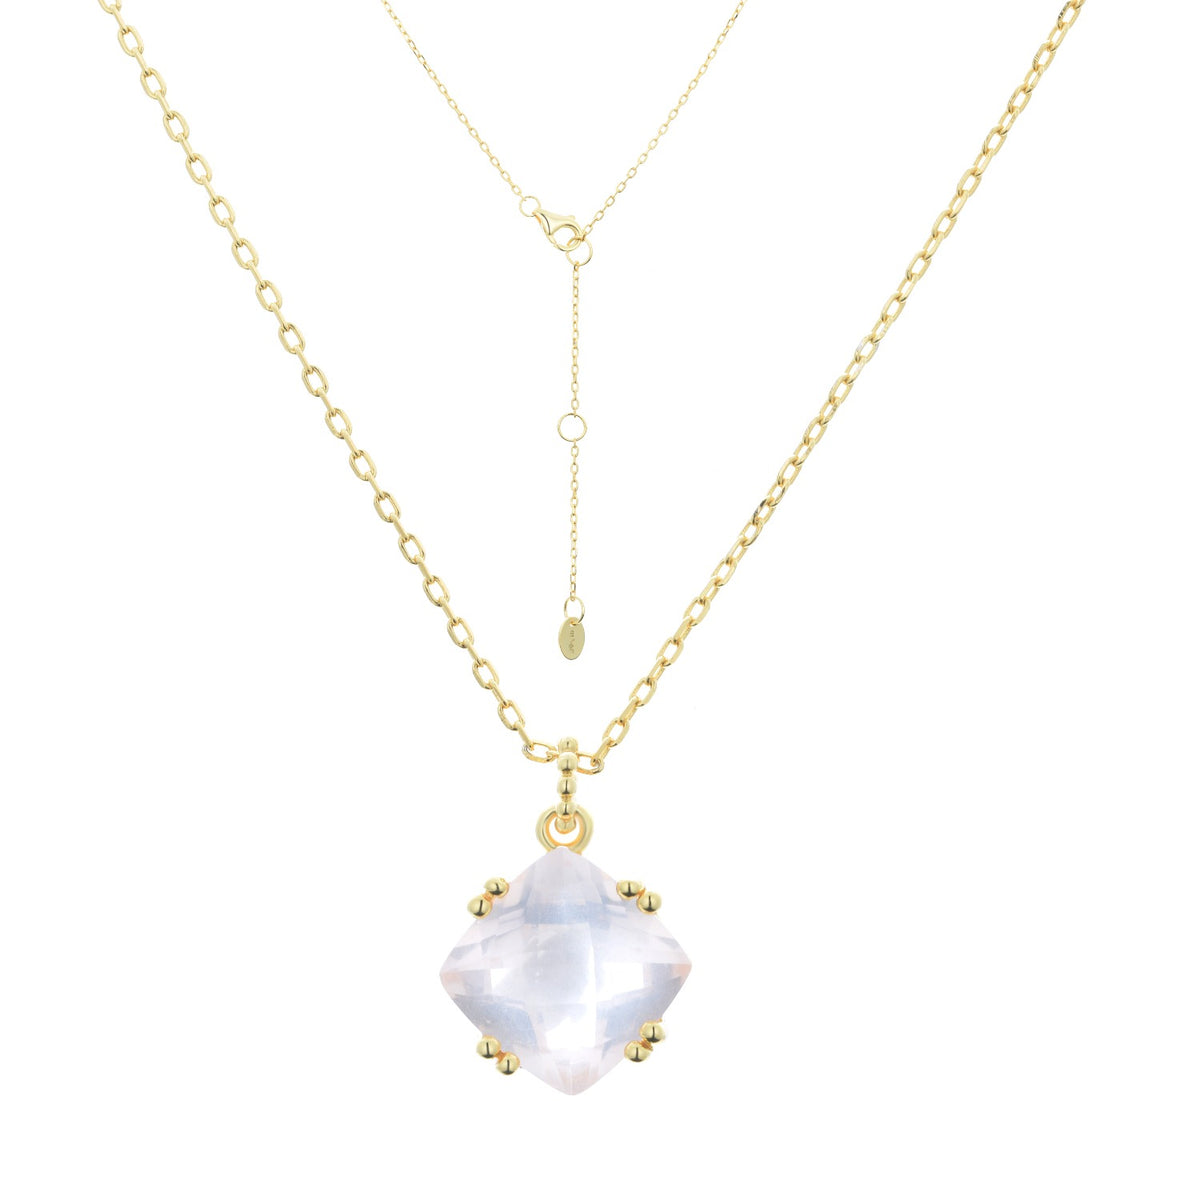 Fortuna | Prato Necklace | 925 Silver | Rose Quarts | 18K Gold Plated